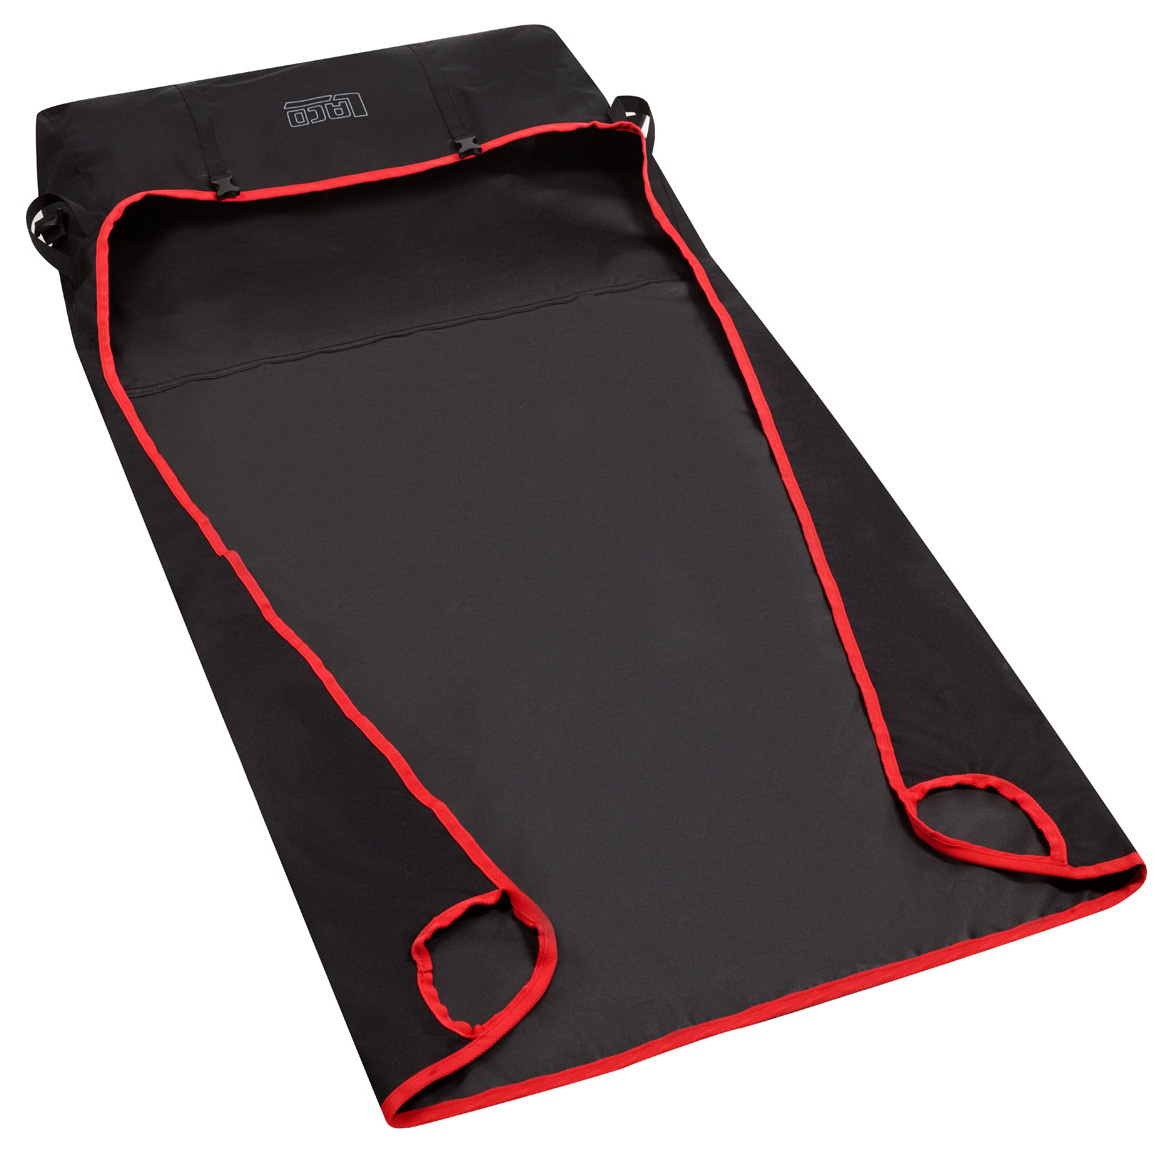 LACD LACD Rope Envelope black -